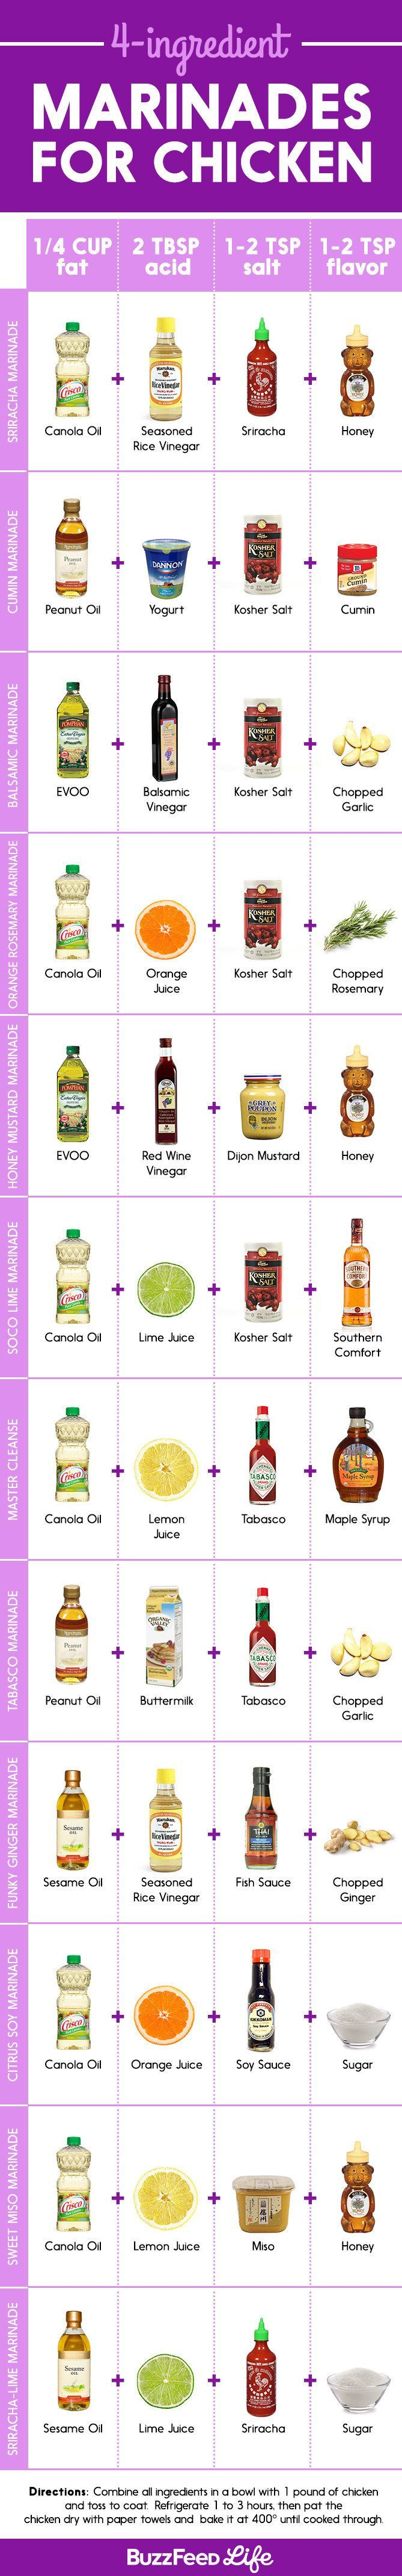 4-Ingredient Marinades for Chicken